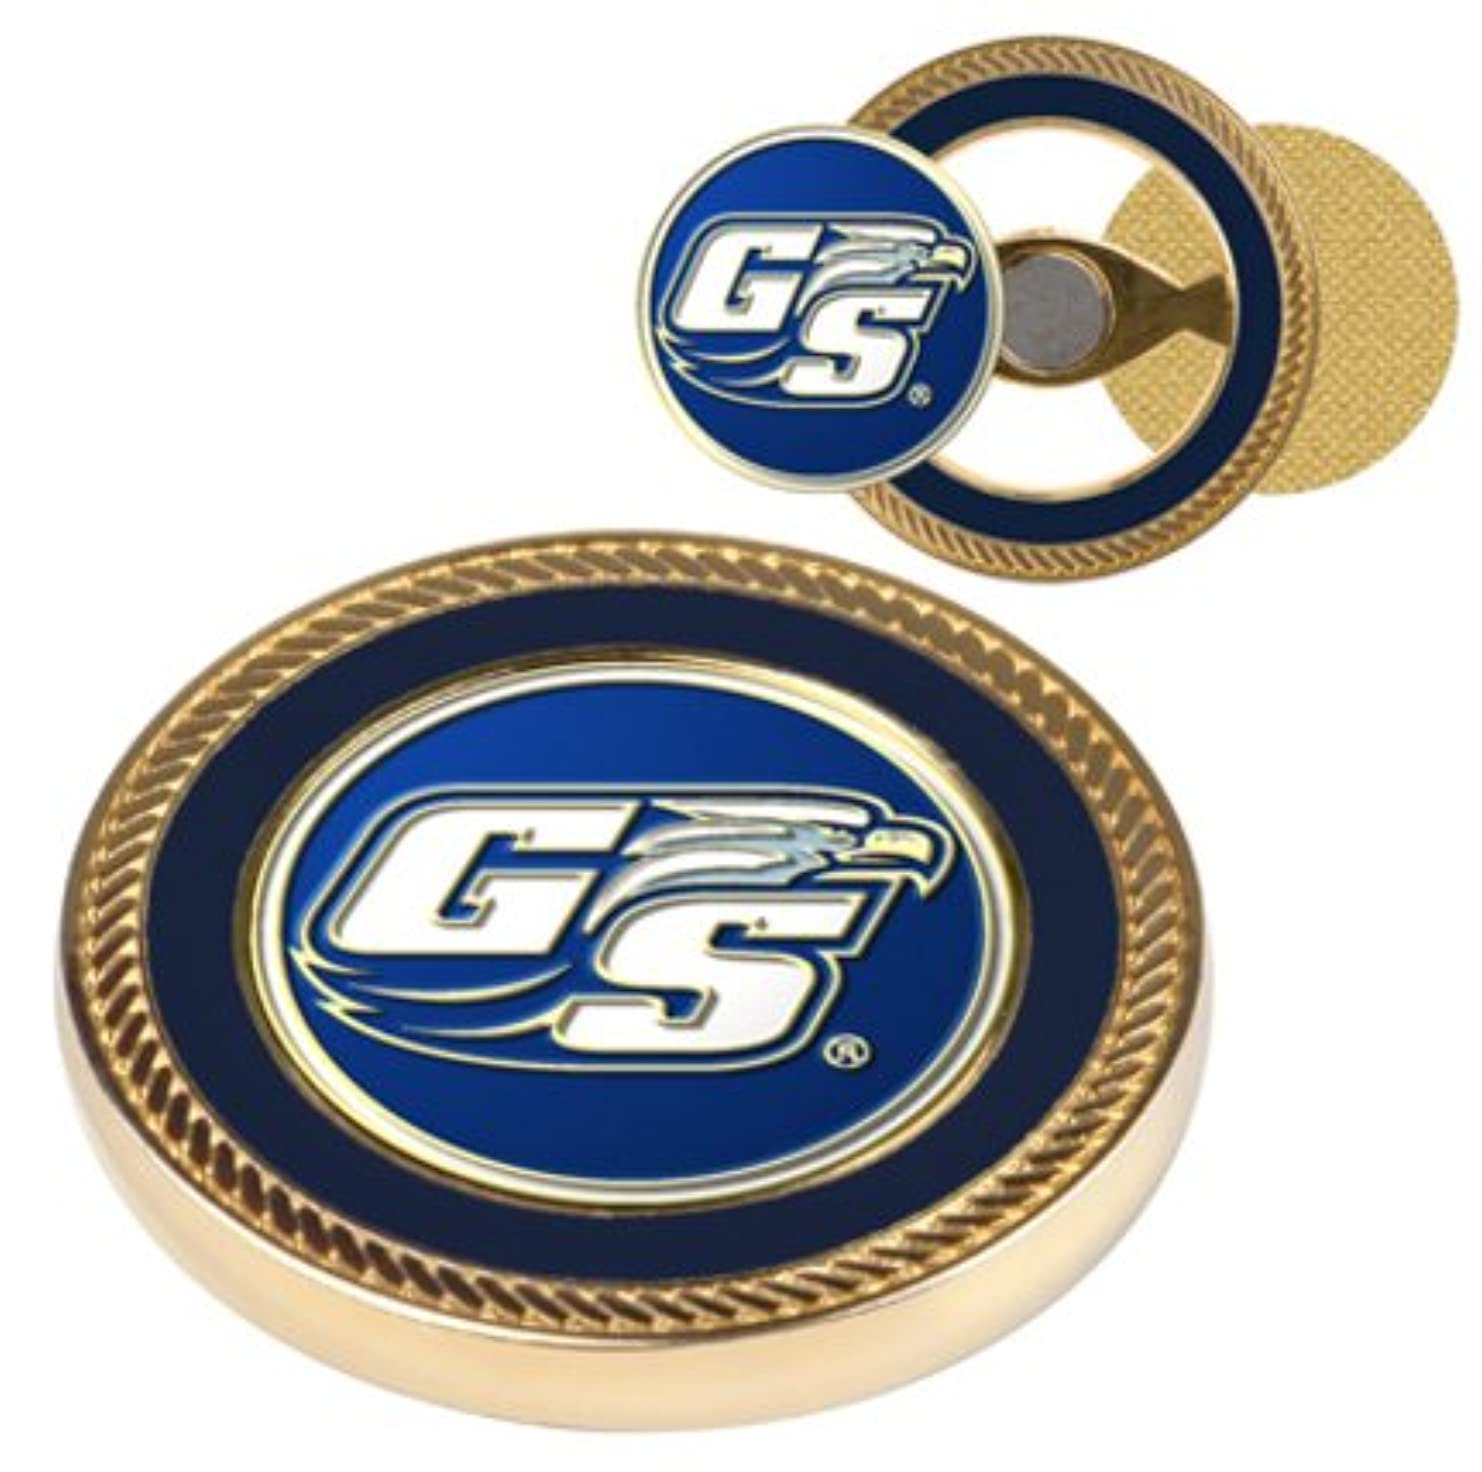 不健全詳細な枕Georgia Southern Eagles Challenge Coin withボールマーカー( Set of 2 )